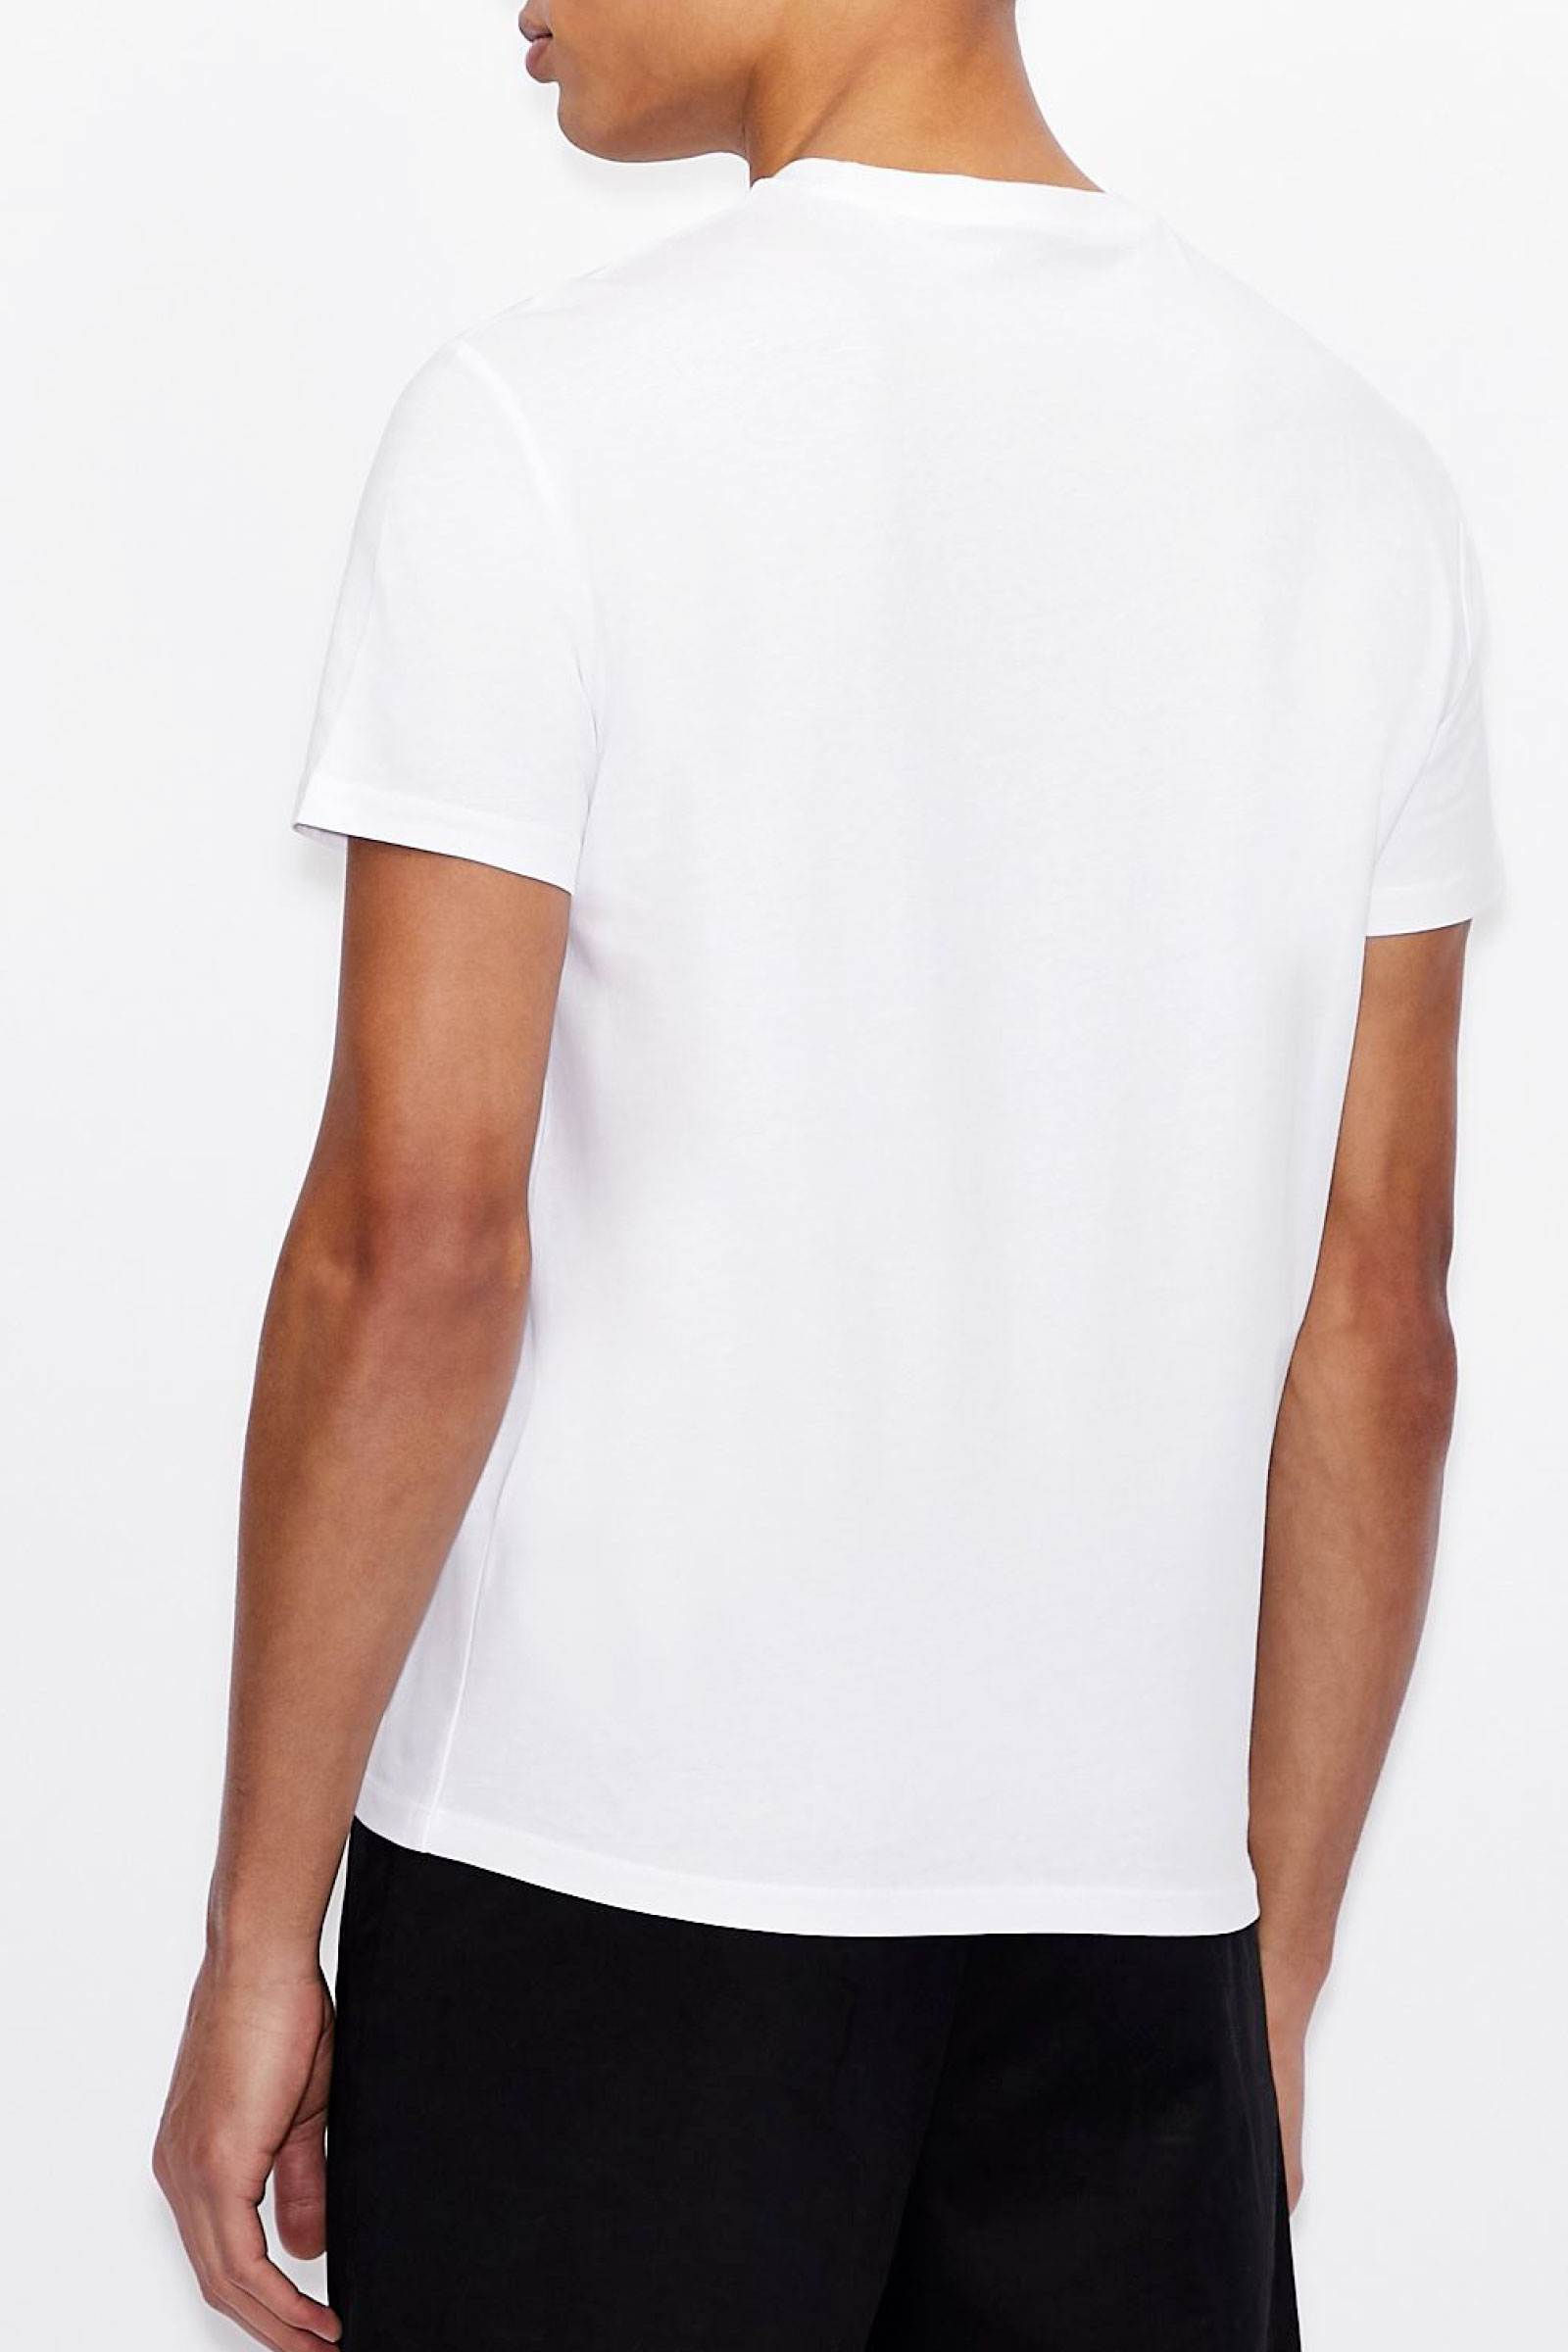 ARMANI EXCHANGE T-Shirt Uomo ARMANI EXCHANGE | T-Shirt | 3KZTAD ZJ4JZ1100